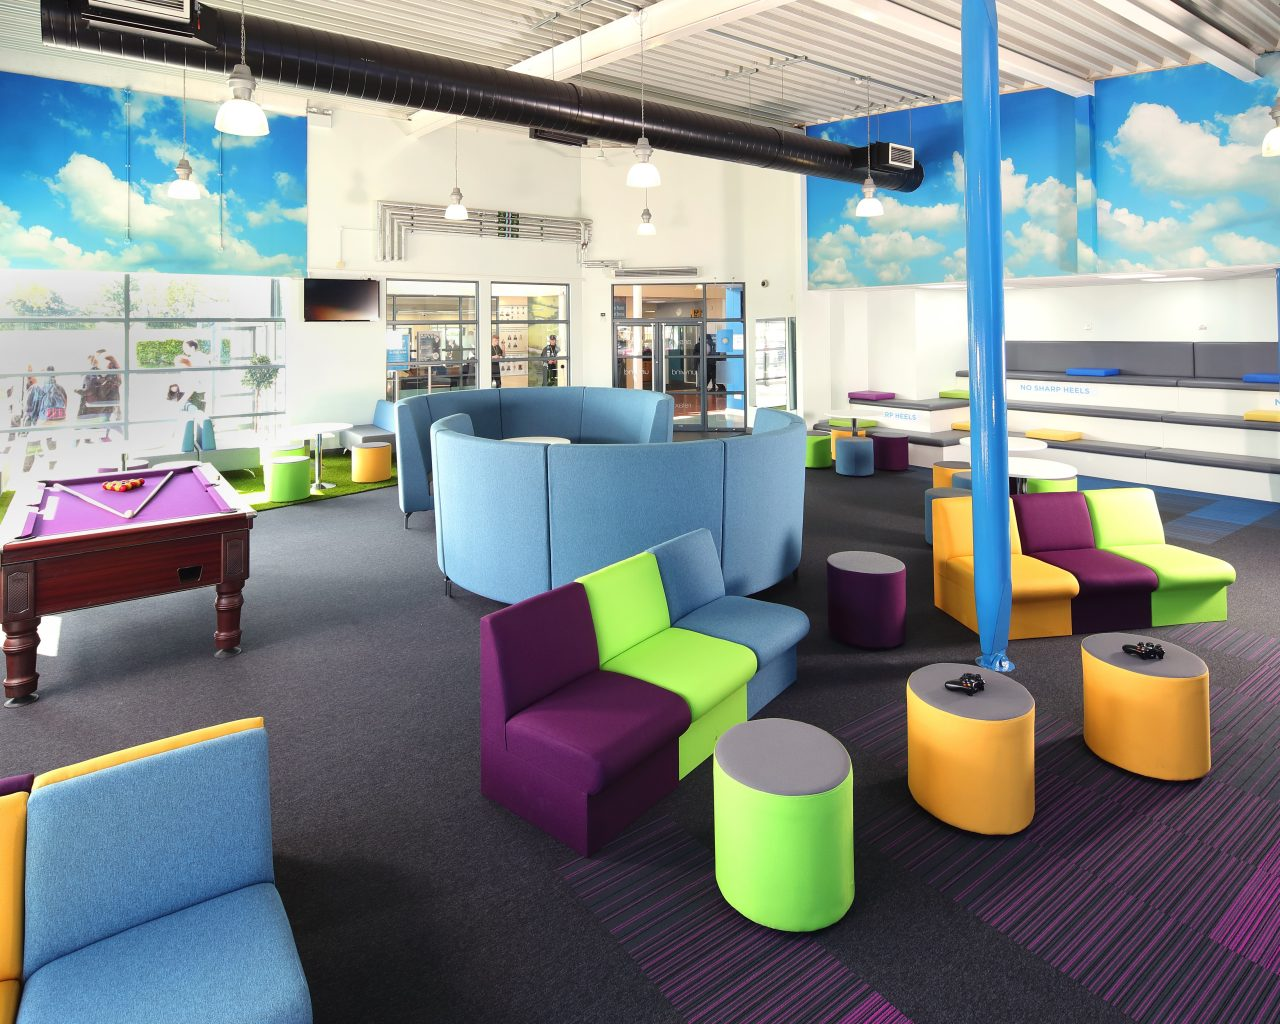 Social spaces in schools, Manchester